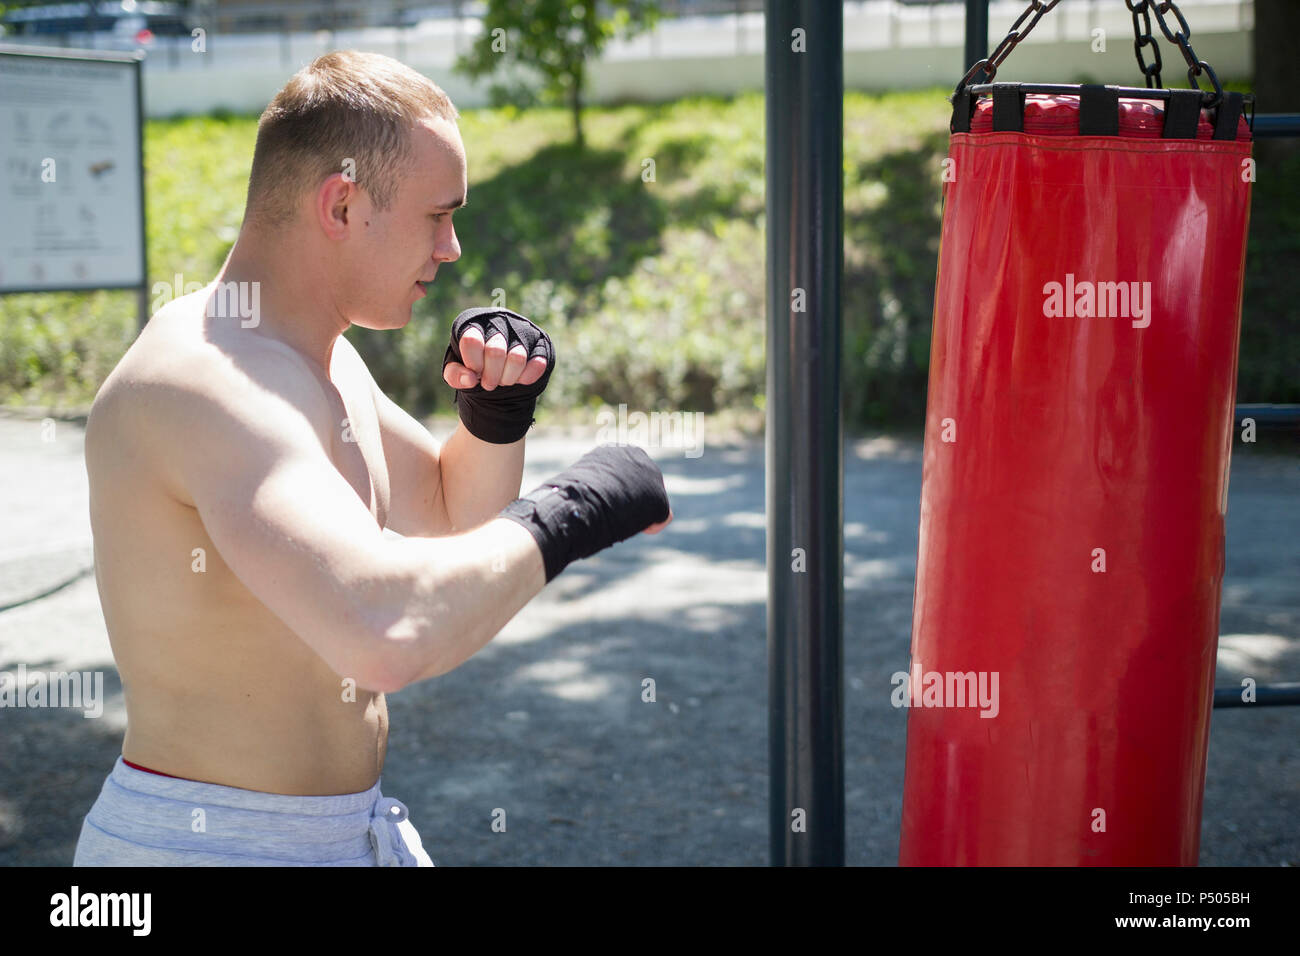 Athletic young man engaged in boxing with punching bag in summer park - Stock Image